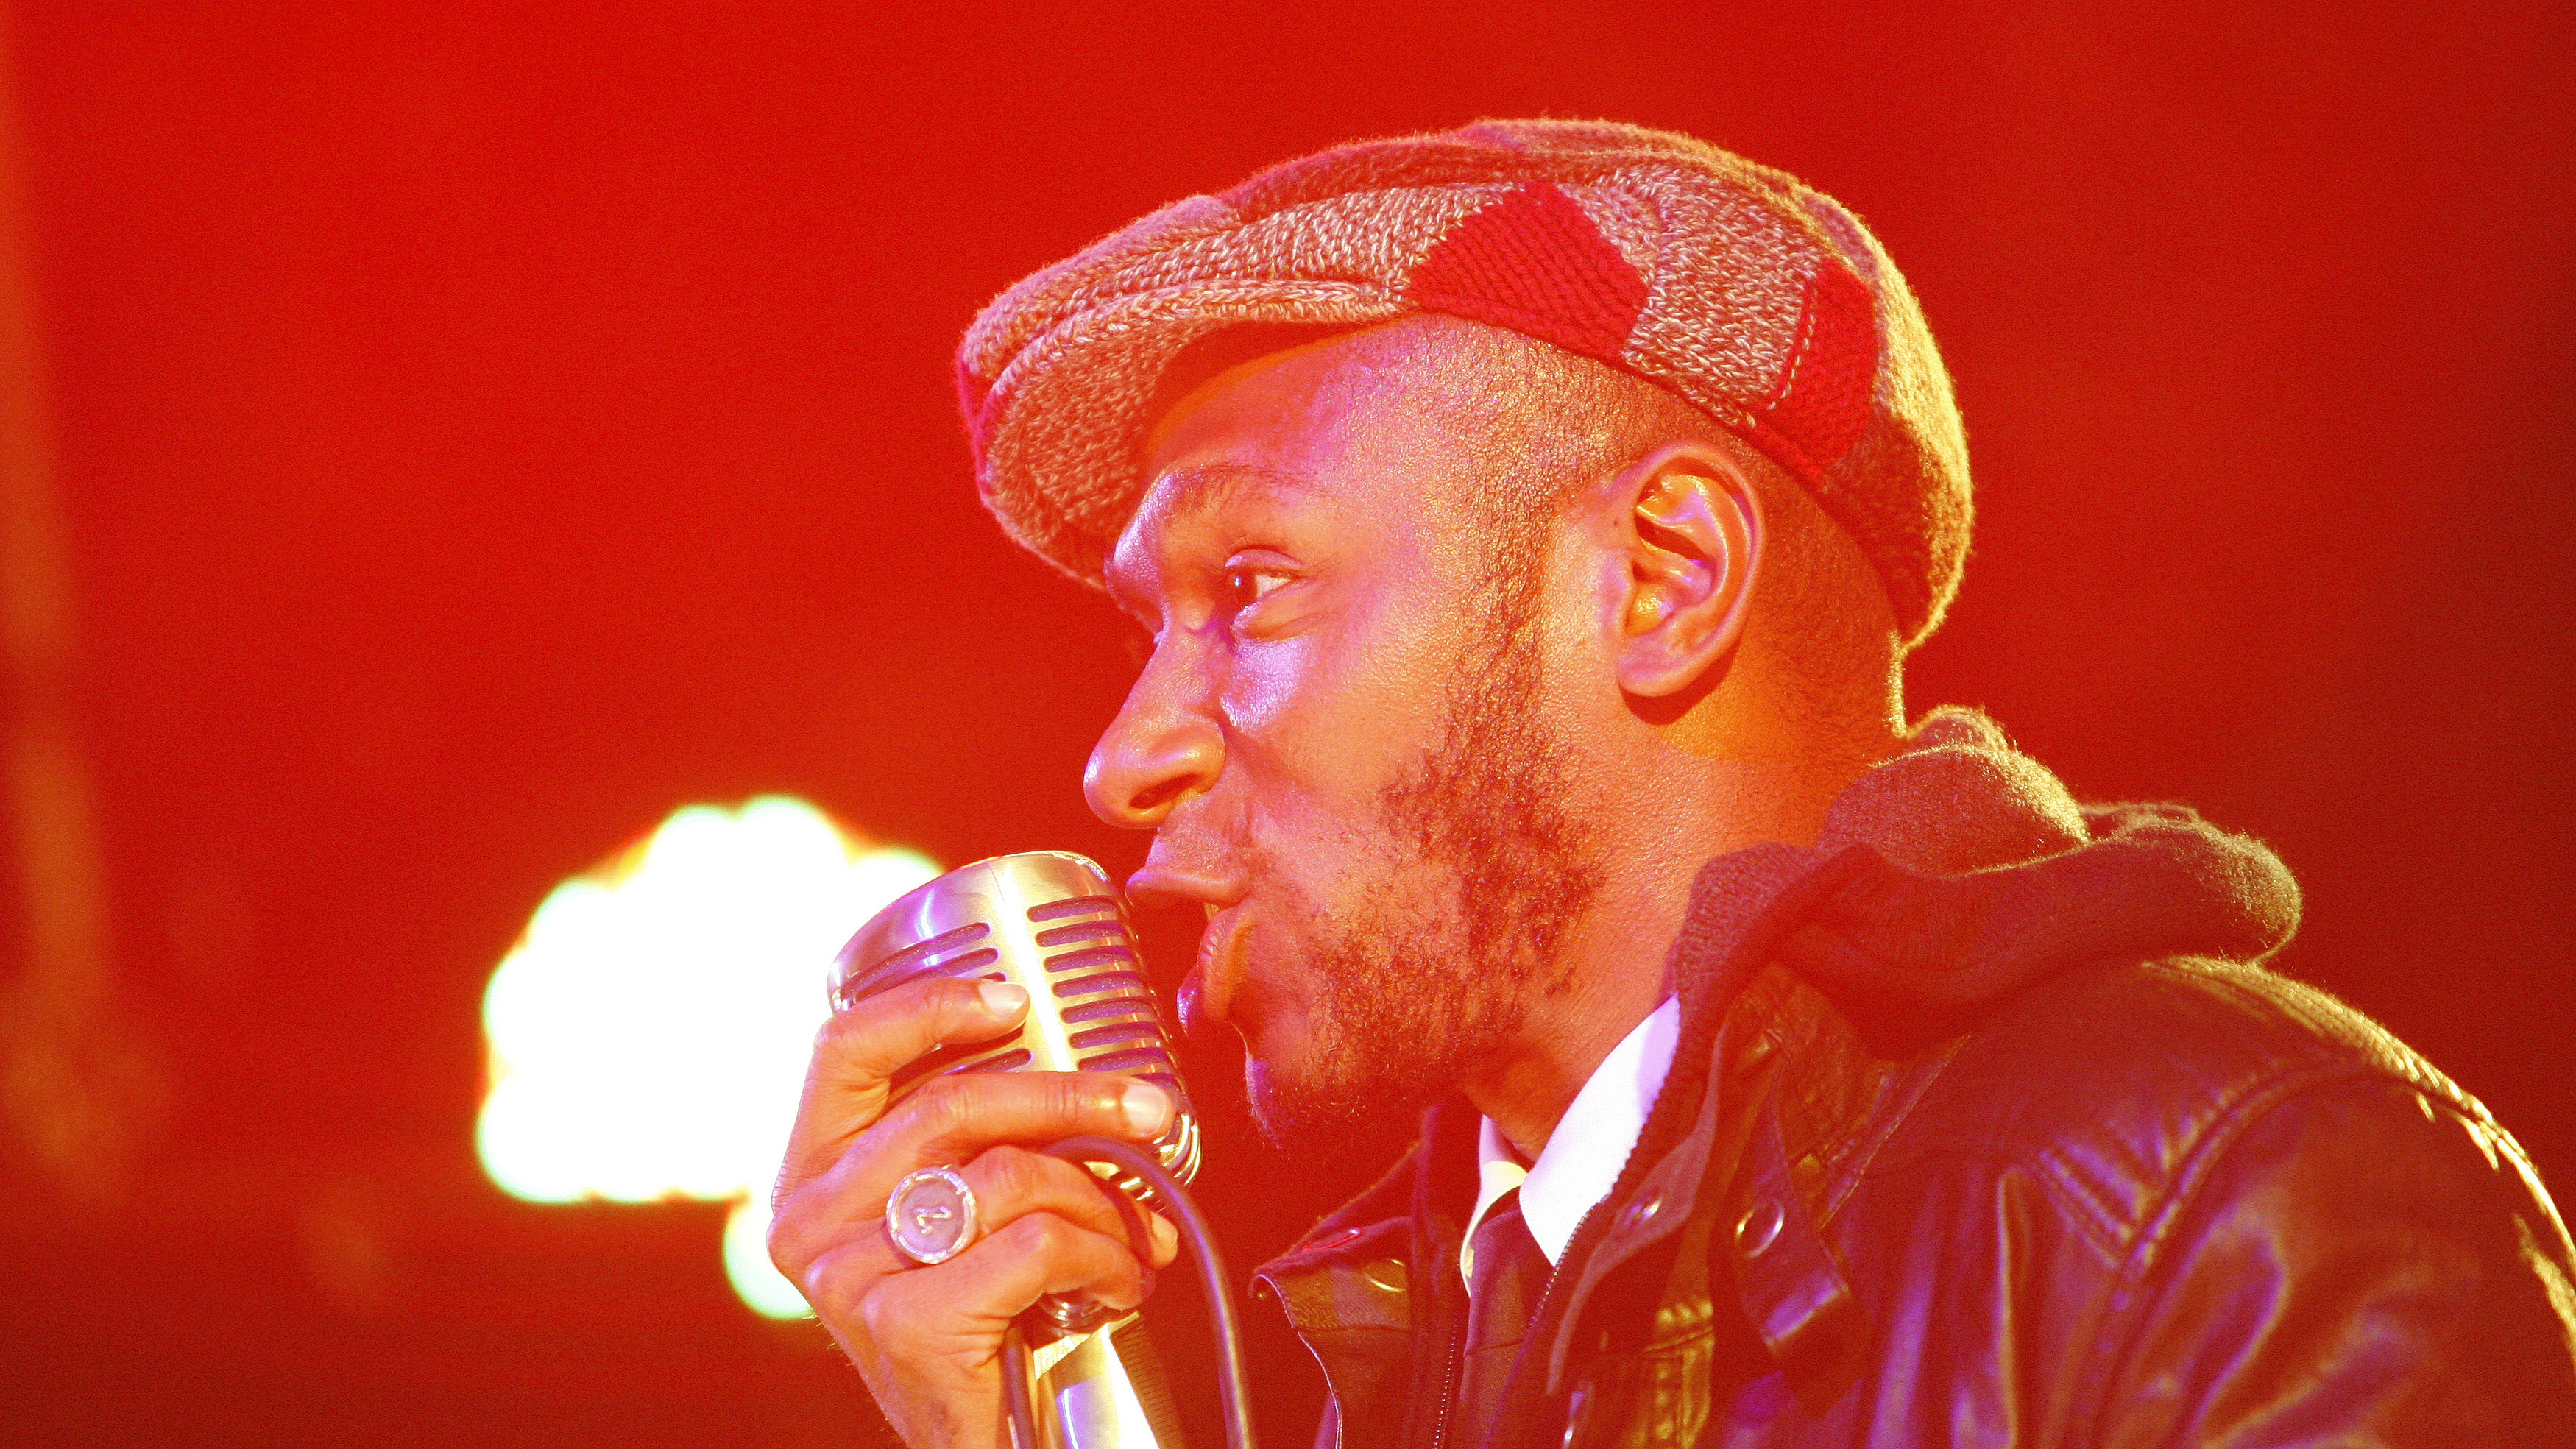 Rapper Mos Def is leaving South Africa after his arrest for